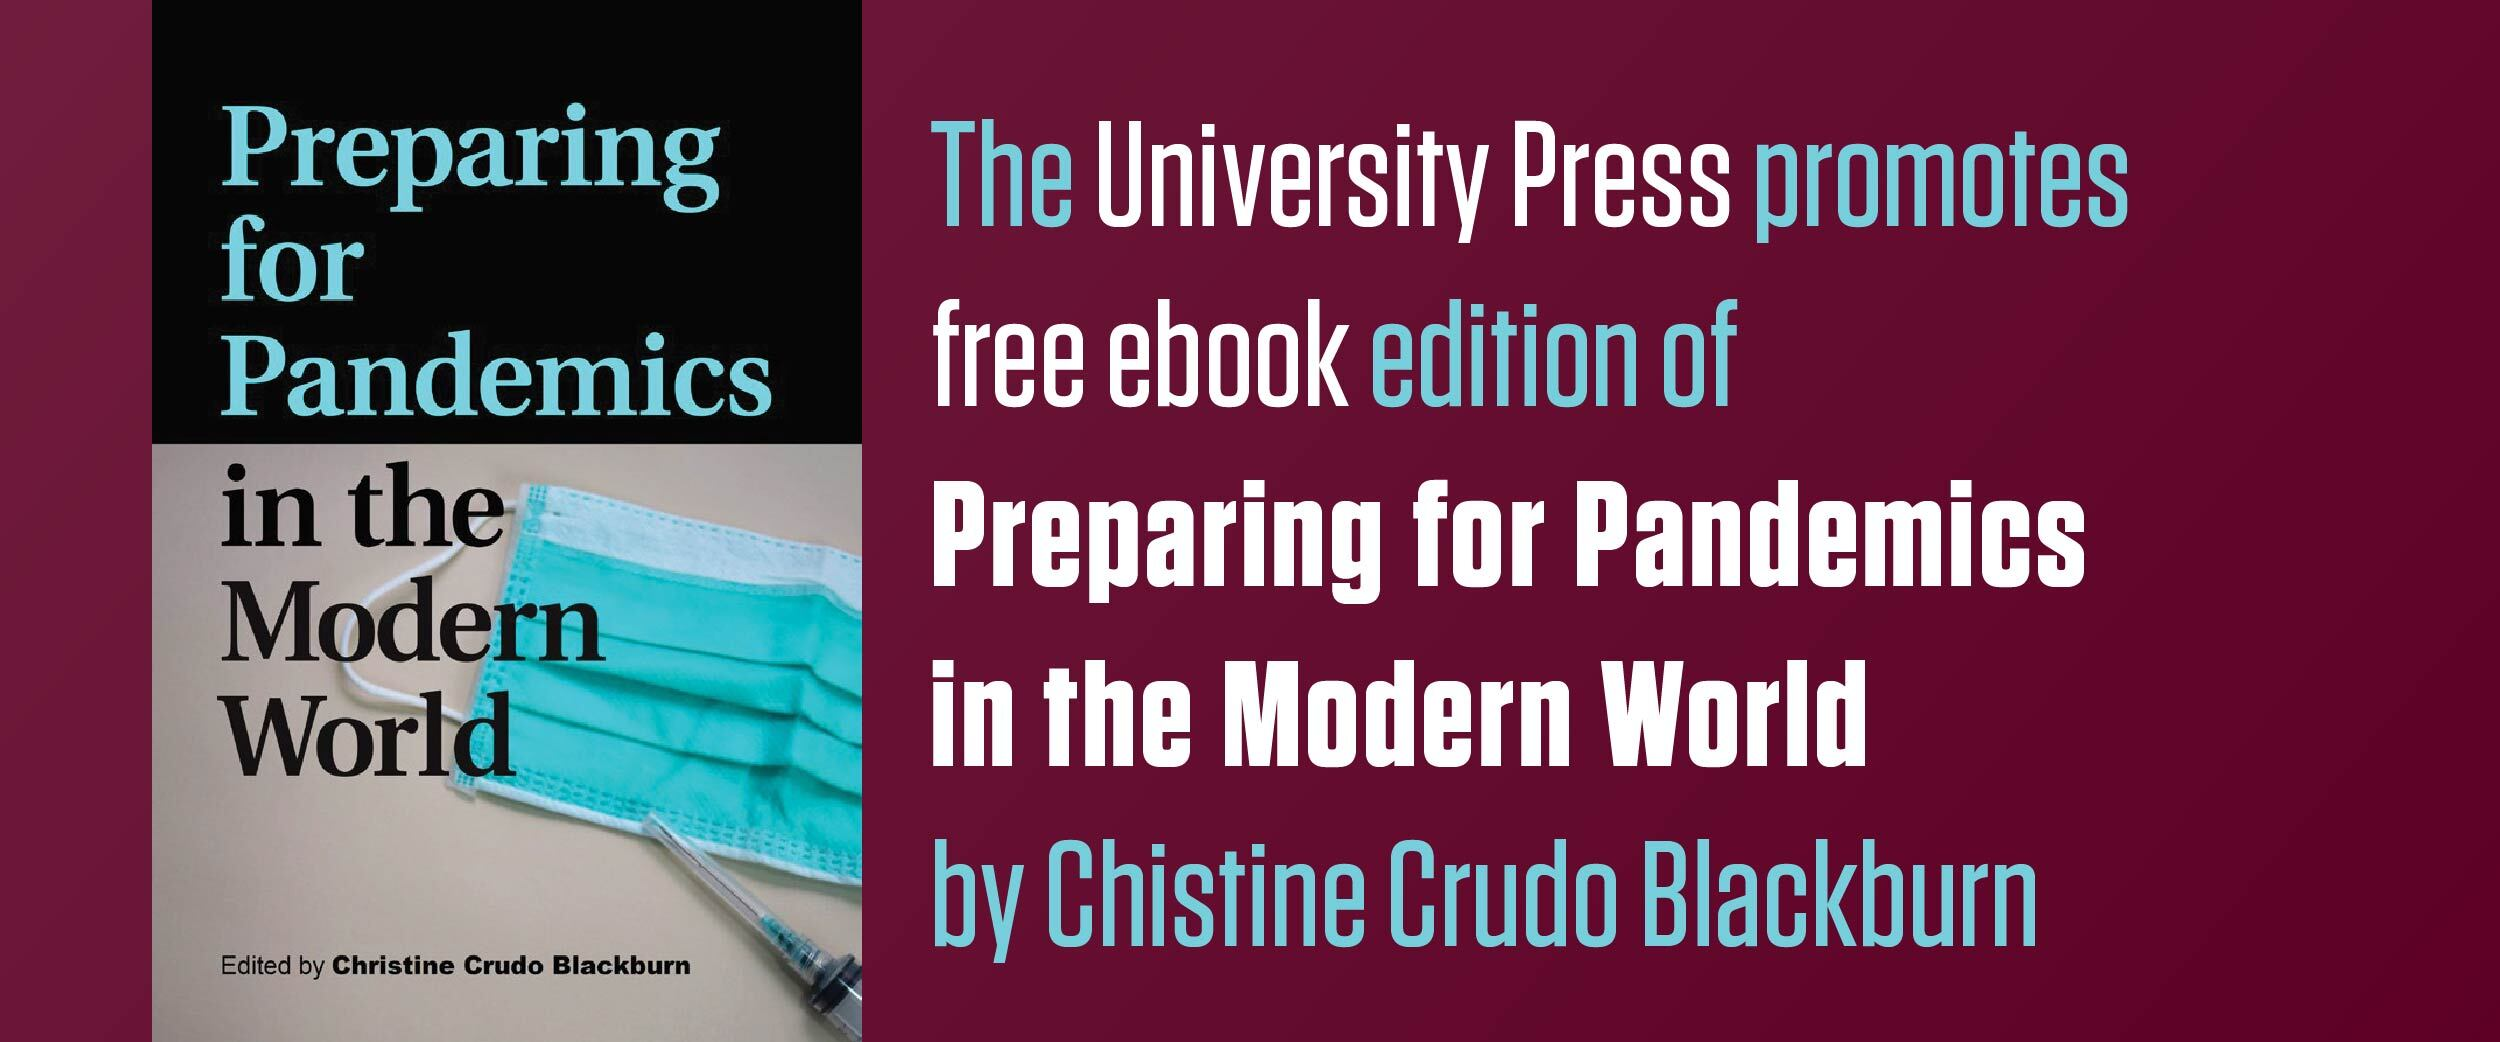 "The University Press promotes the free eBook edition of ""Preparing for Pandemics in the Modern World"" by Christine Crudo Blackburn"